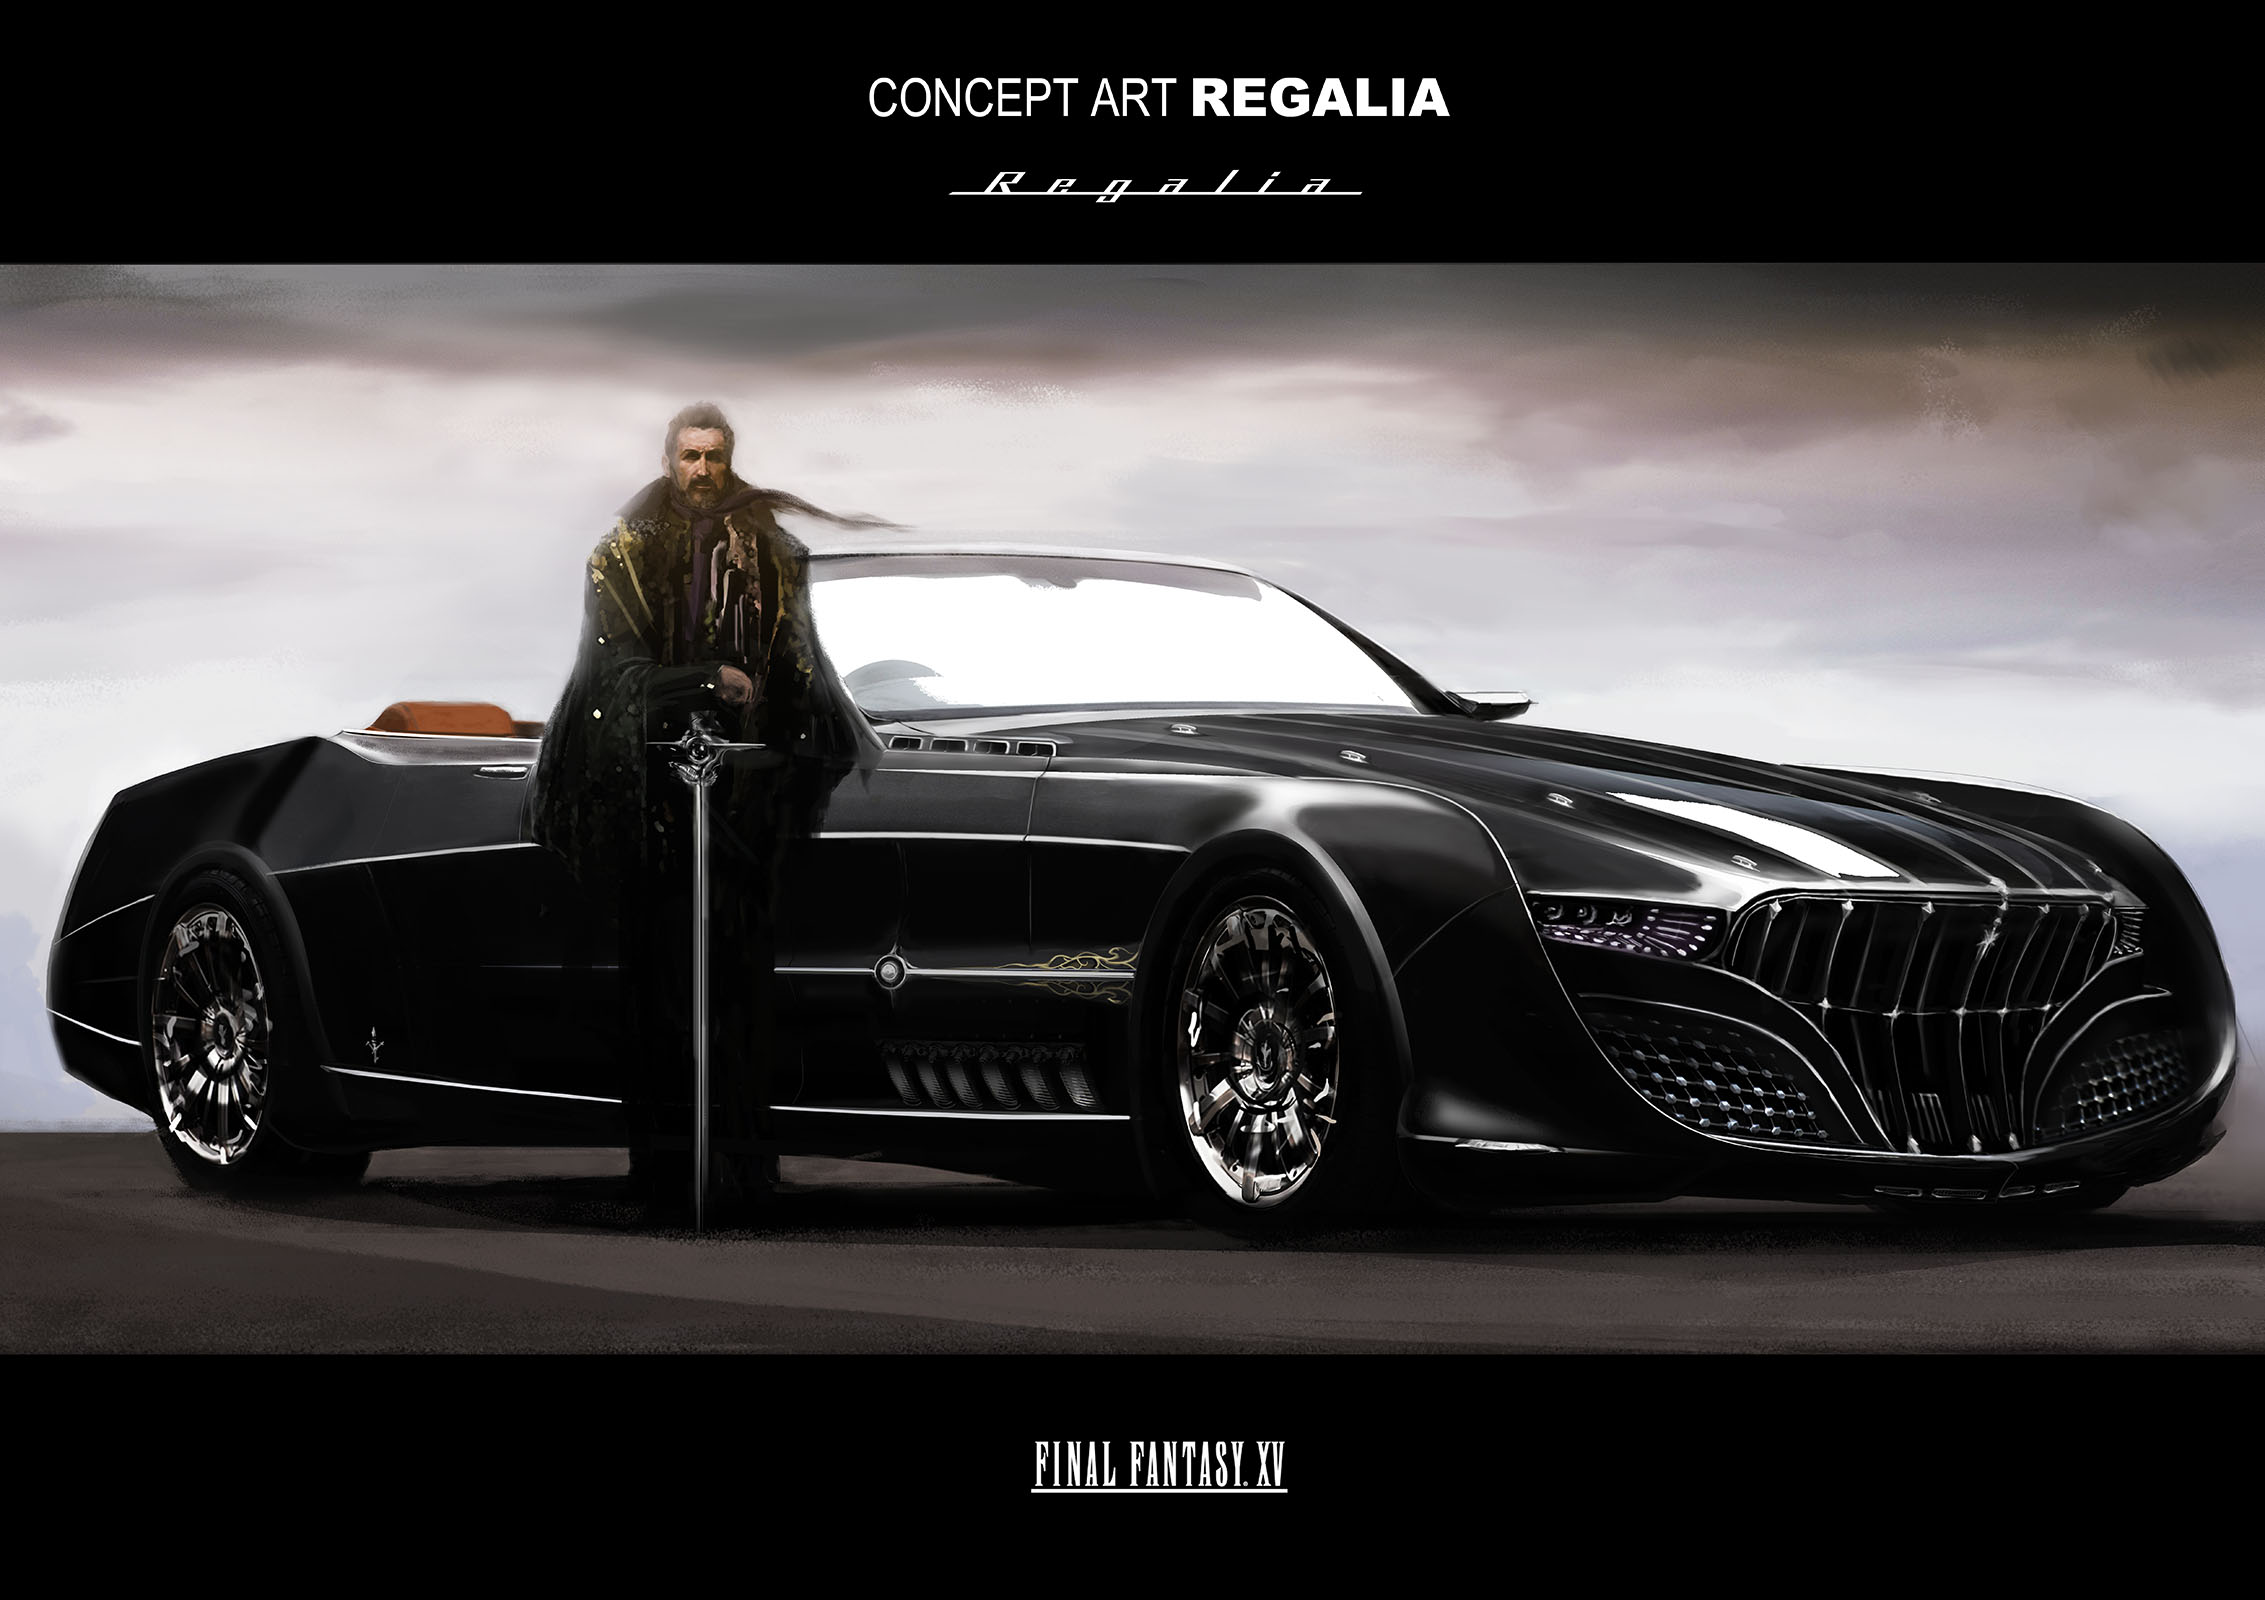 Final Fantasy 15 game concept art of the \